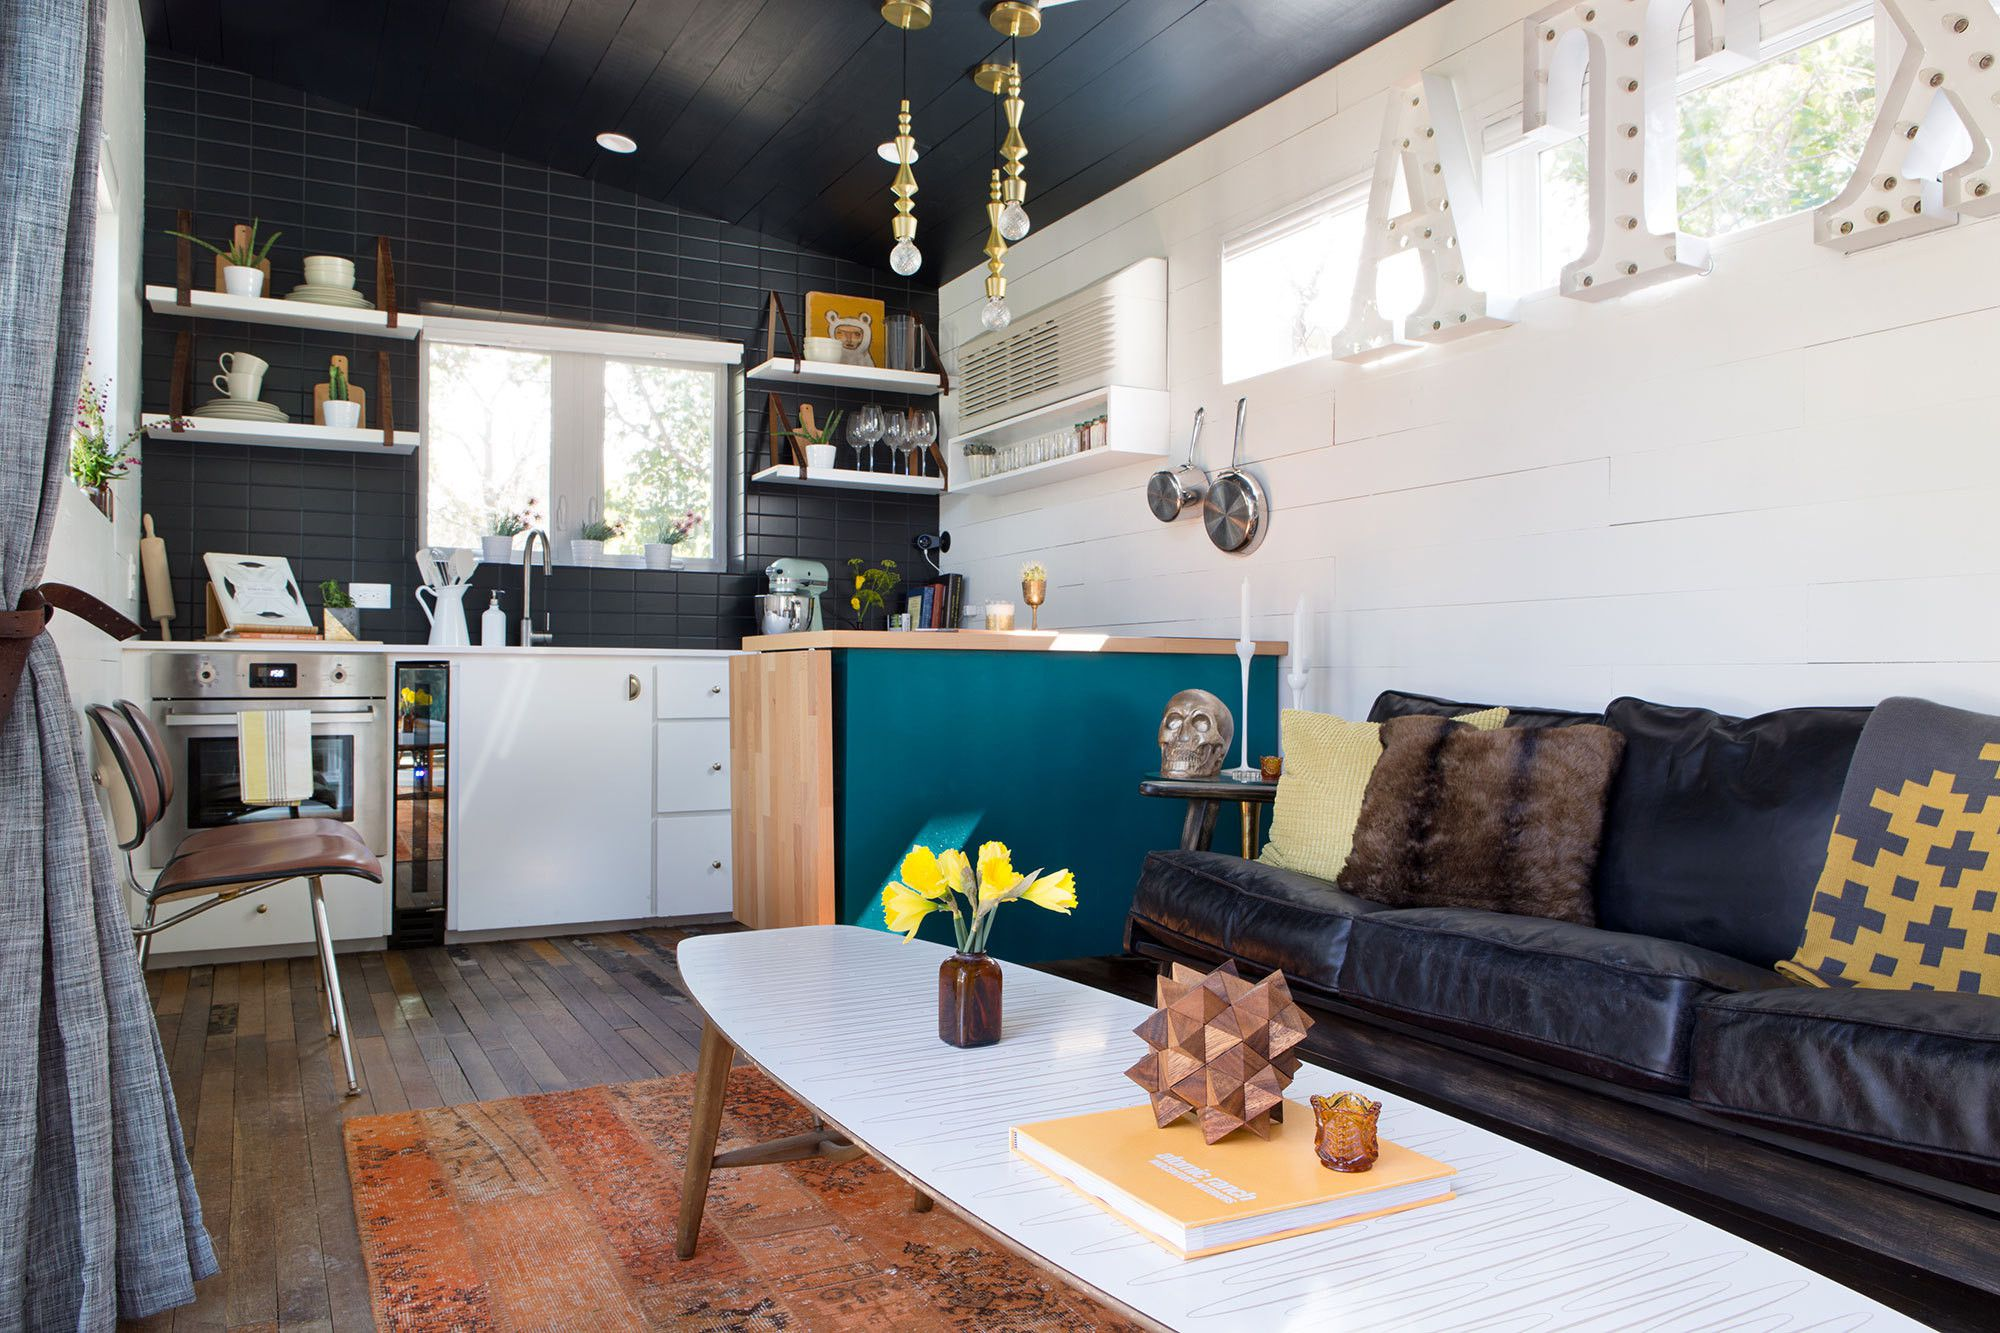 Decorating Small Spaces: 7 Outdated Rules You Can Break